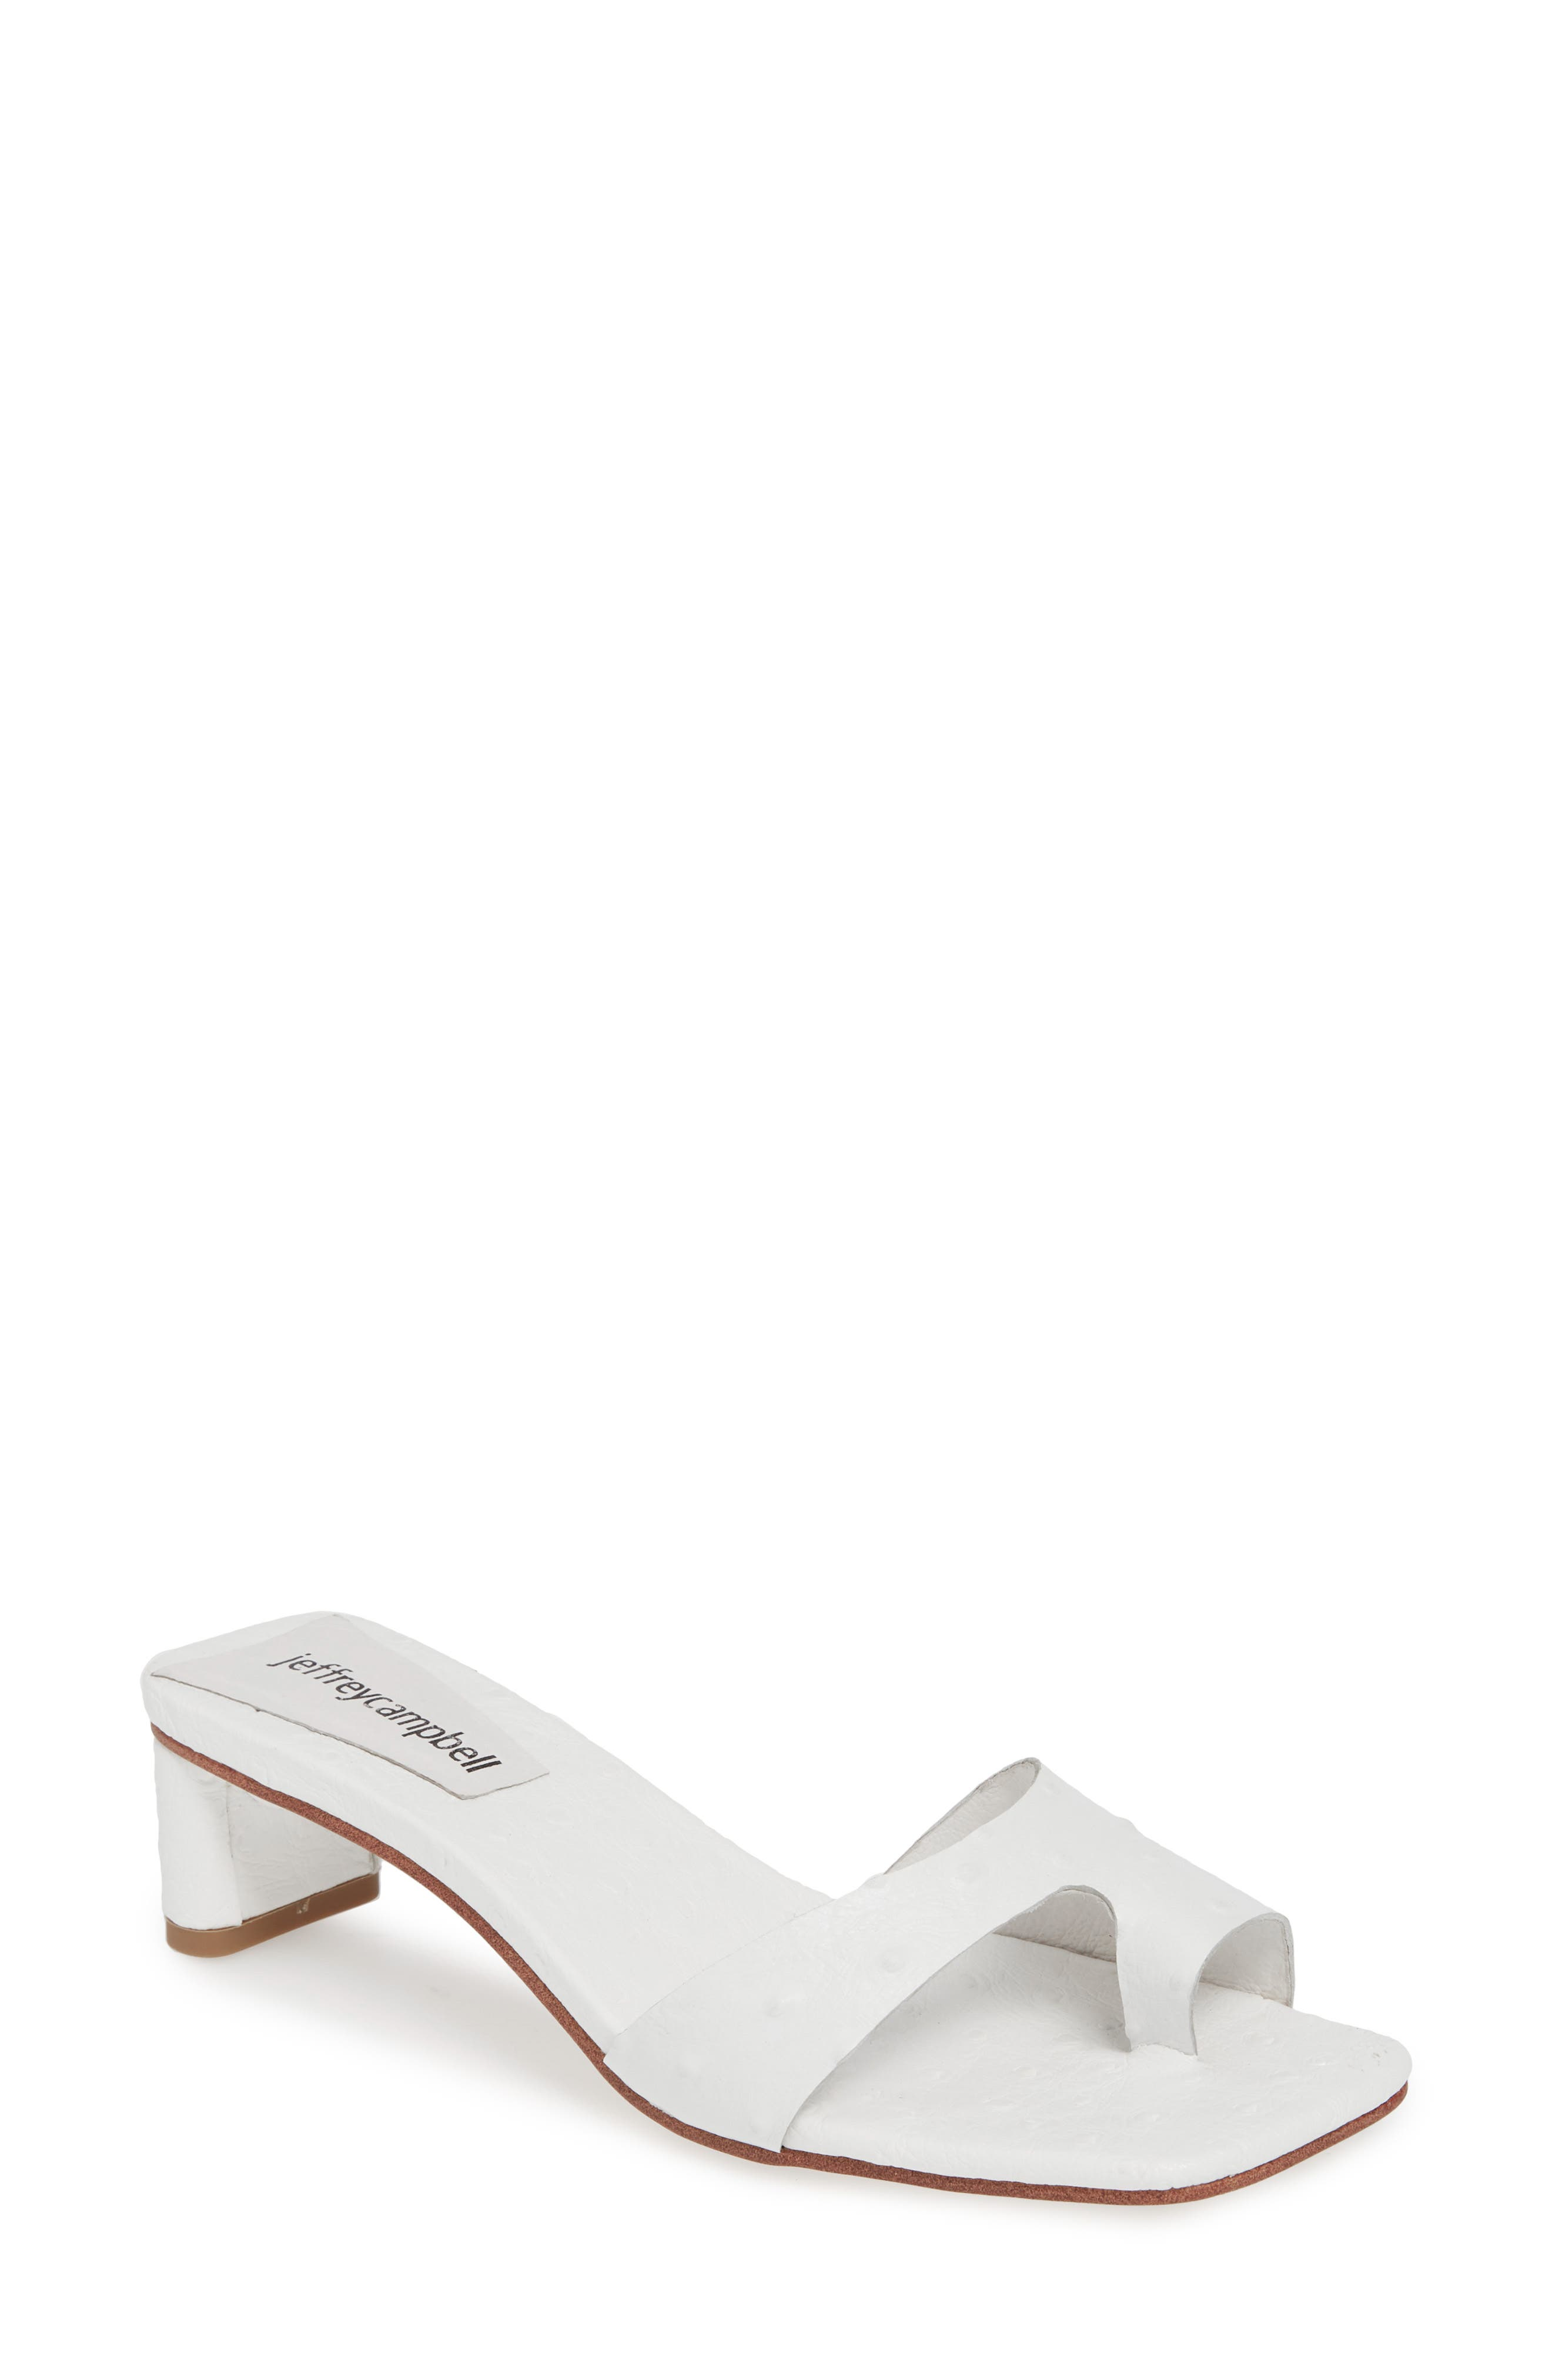 JEFFREY CAMPBELL, Teclado Slide Sandal, Main thumbnail 1, color, 121